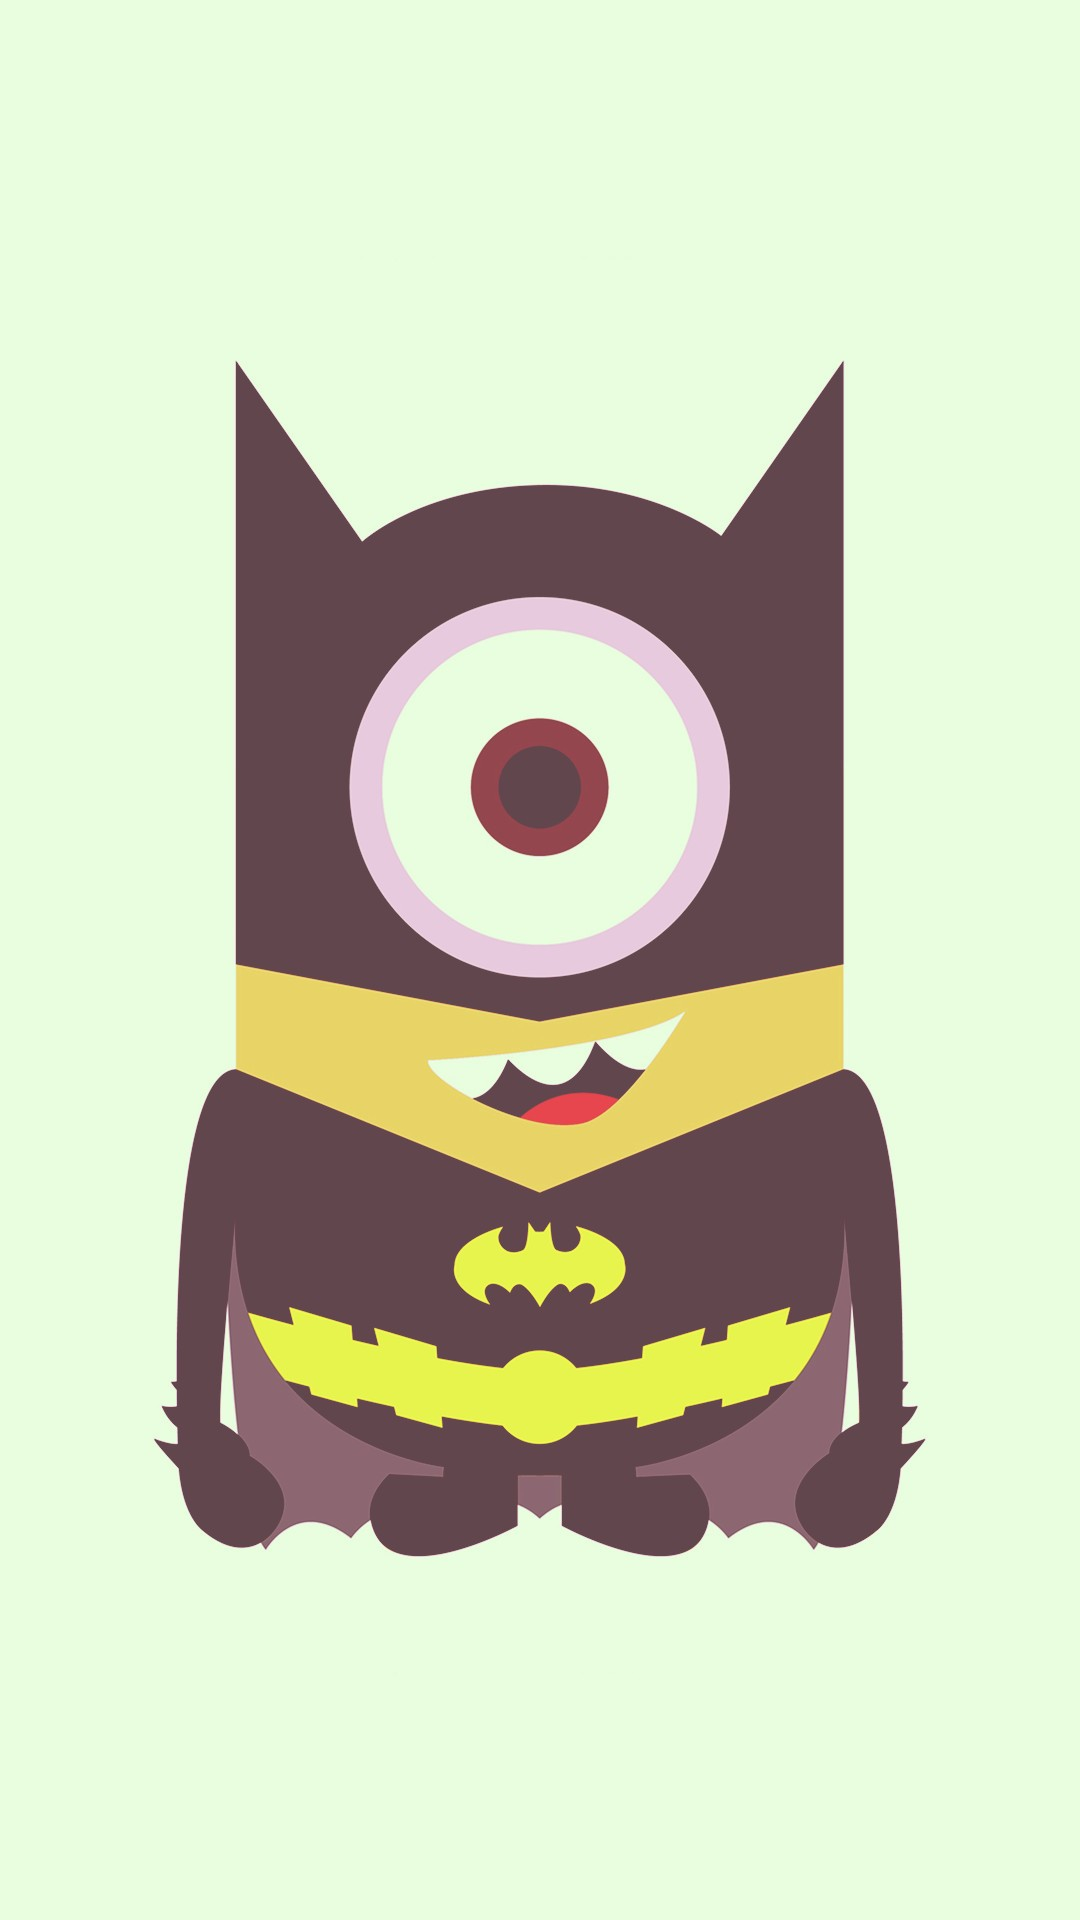 cool-bat-man-minion-iphone-plus-Despicable-Me-Halloween-ipho-wallpaper-wp5804704